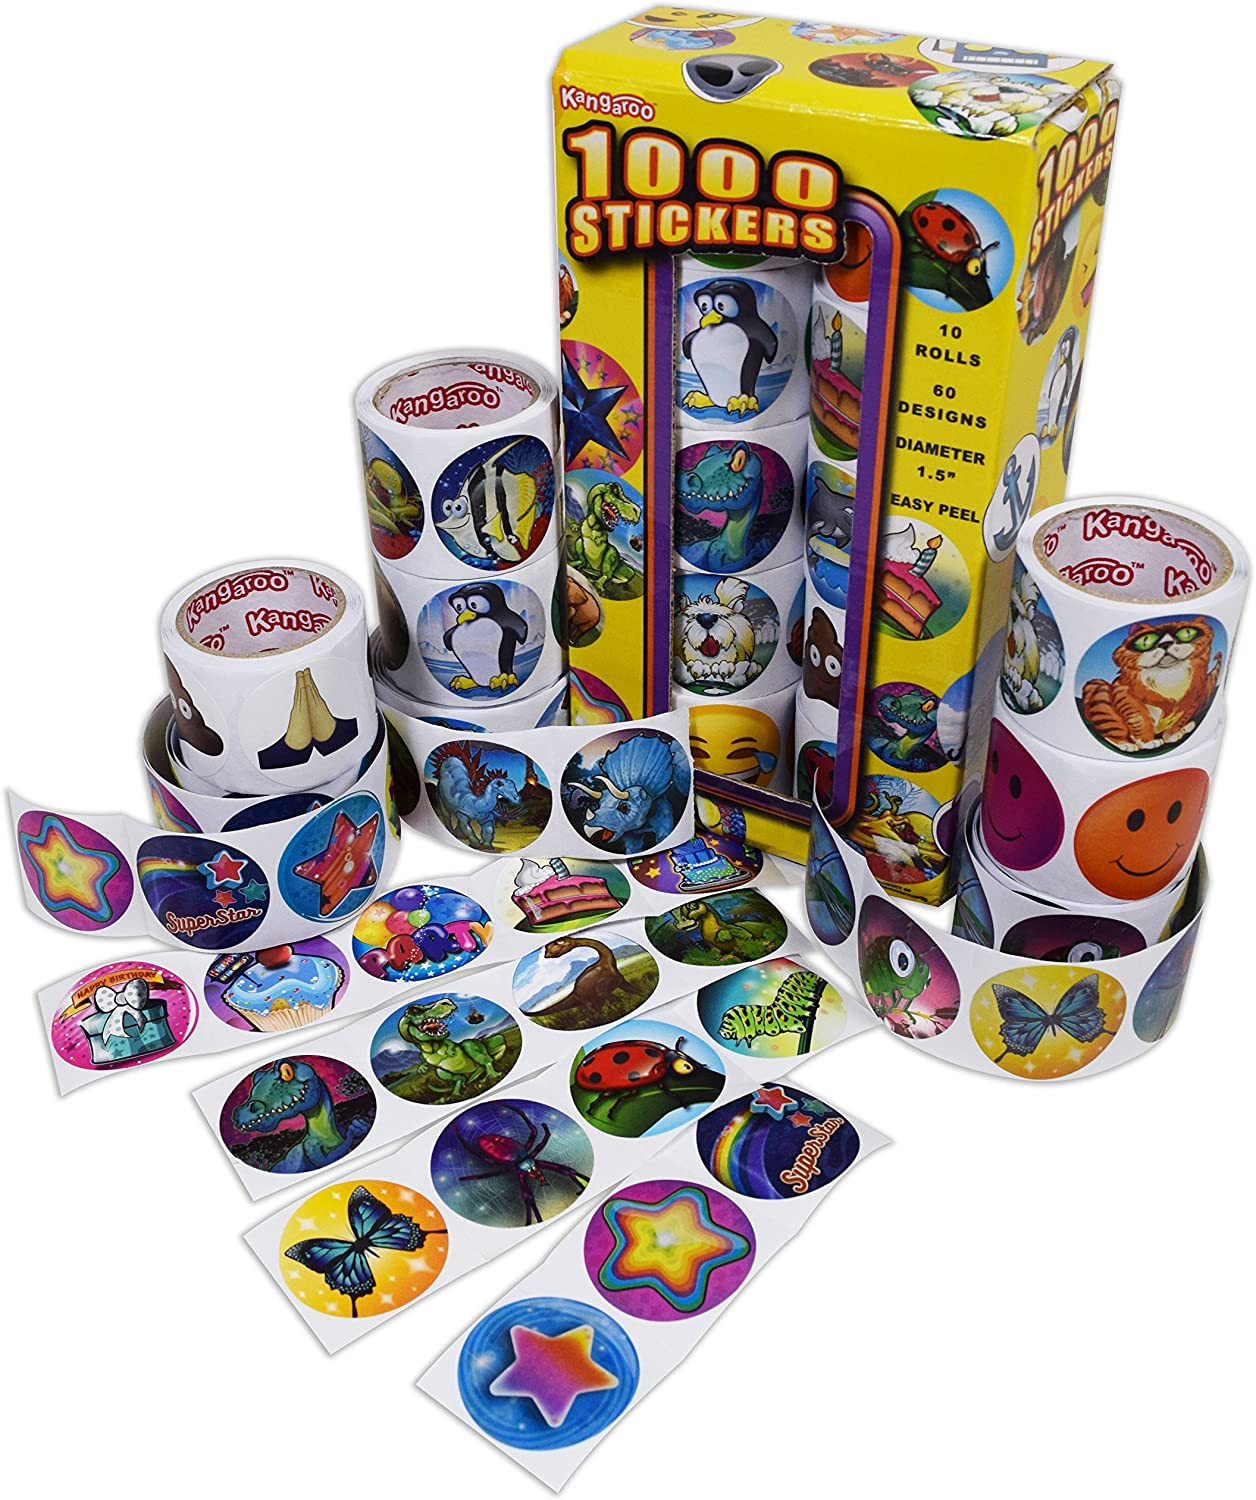 Kangaroo Mega Jumbo Sticker Assortment, 1000 Stickers